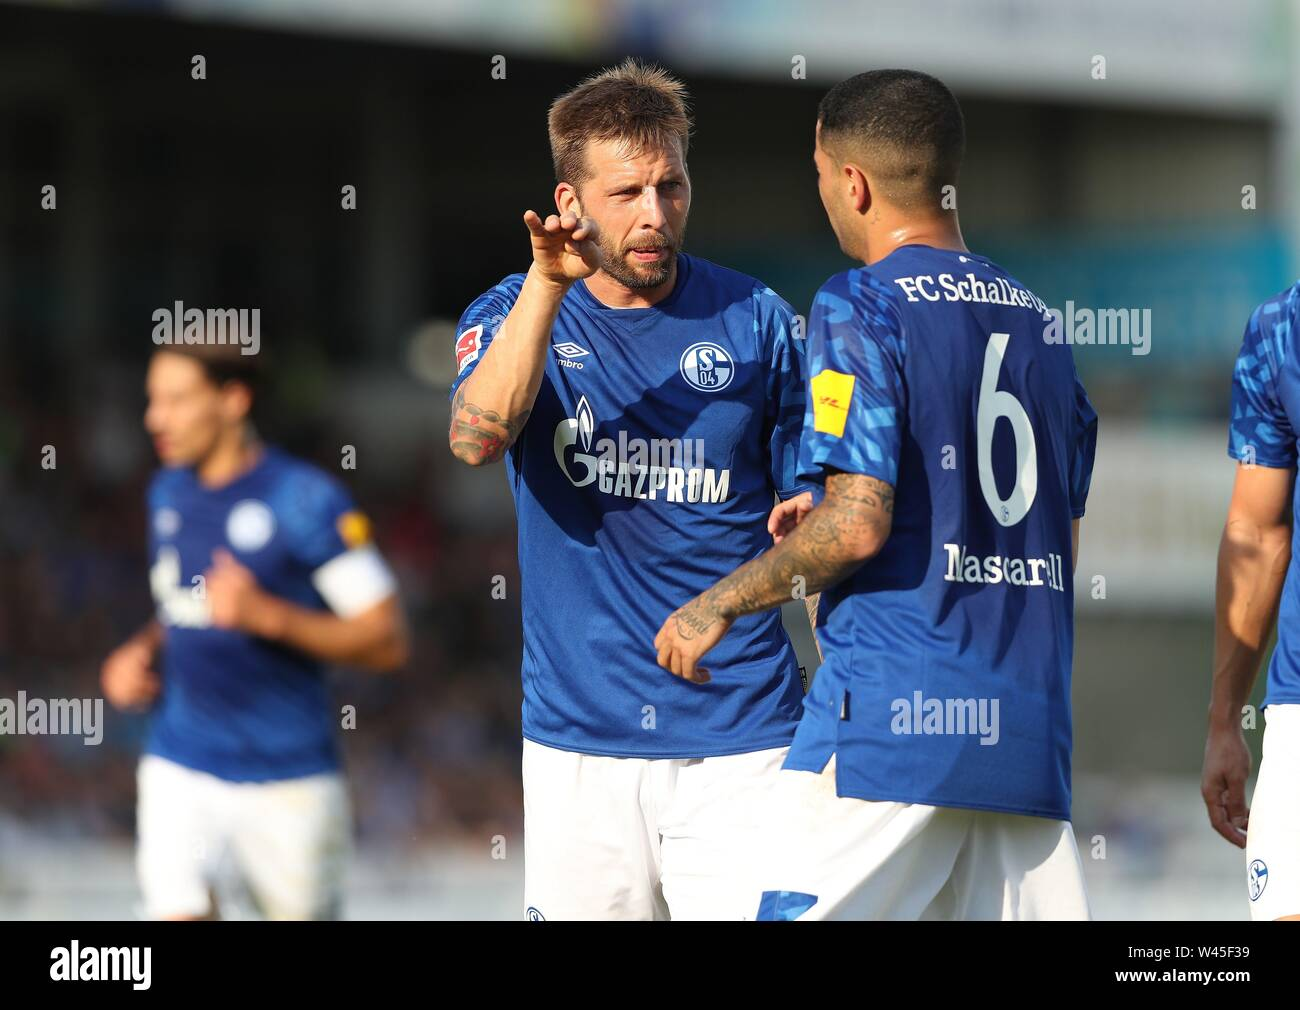 Lotte, Deutschland. 19th July, 2019. firo: 19.07.2019, football, 1.Bundesliga, season 2019/2020, friendly match, FC Schalke 04 - Norwich City Guido BURGSTALLER, Schalke, left with MASCARELL | usage worldwide Credit: dpa/Alamy Live News - Stock Image